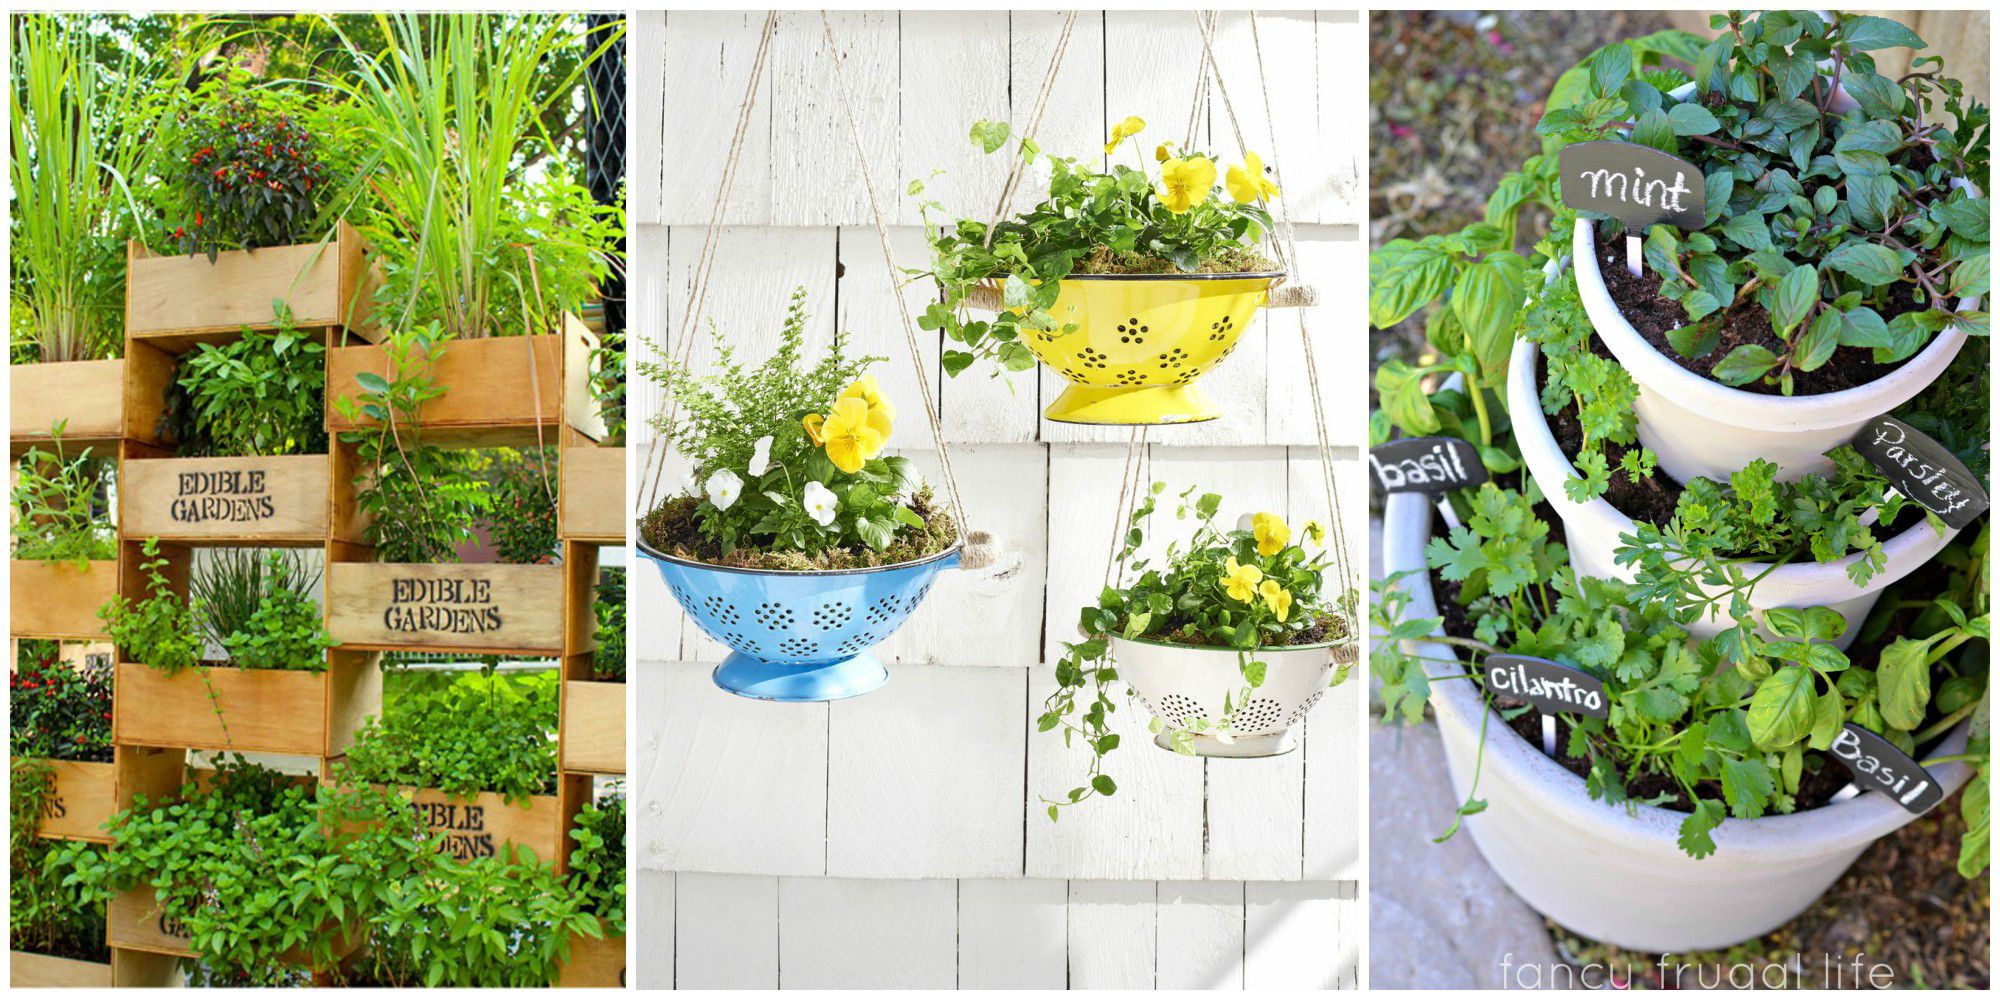 29 Small Backyard Ideas Beautiful Landscaping Designs For Tiny Yards in 10 Smart Concepts of How to Upgrade Backyard Plant Ideas